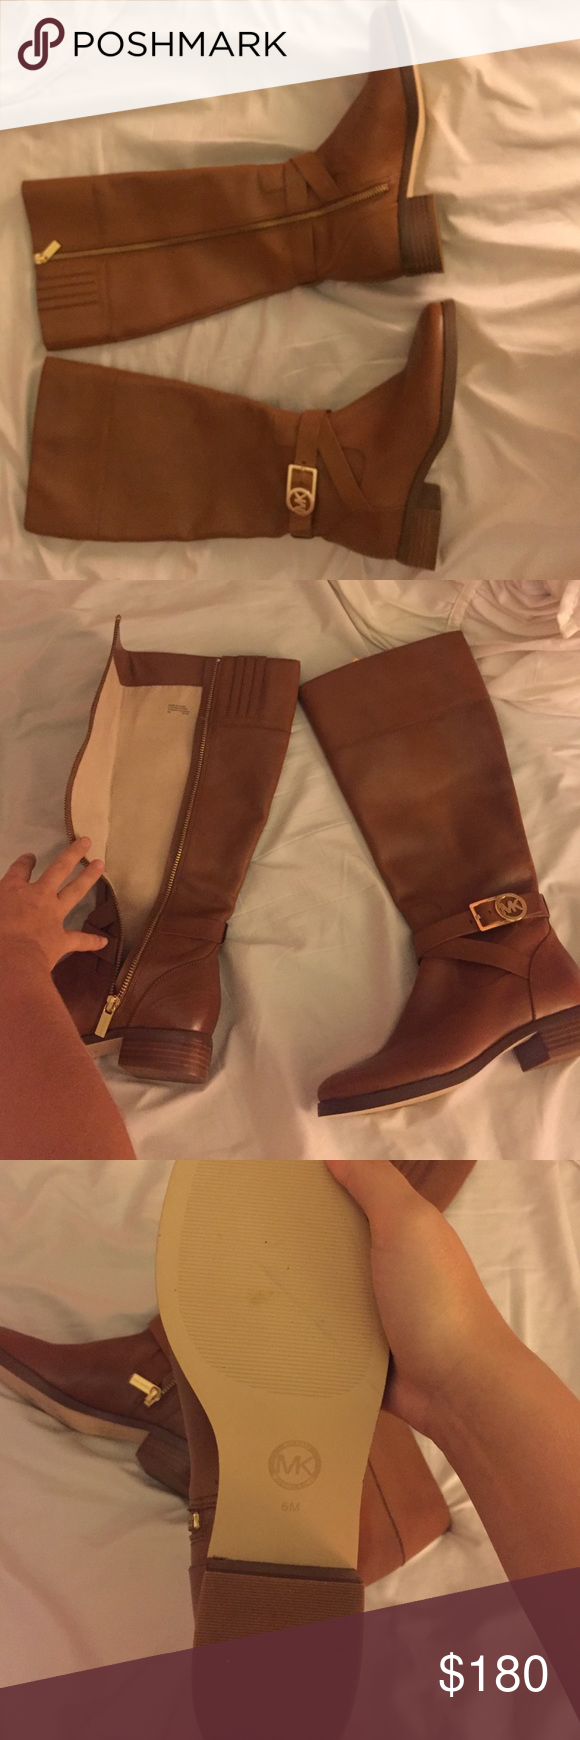 BRAND NEW MICHAEL KORS BOOTS MINT CONDITION 100% AUTHENTIC BROWN MICHAEL KORS BOOTS SIZE 6 Michael Kors Shoes